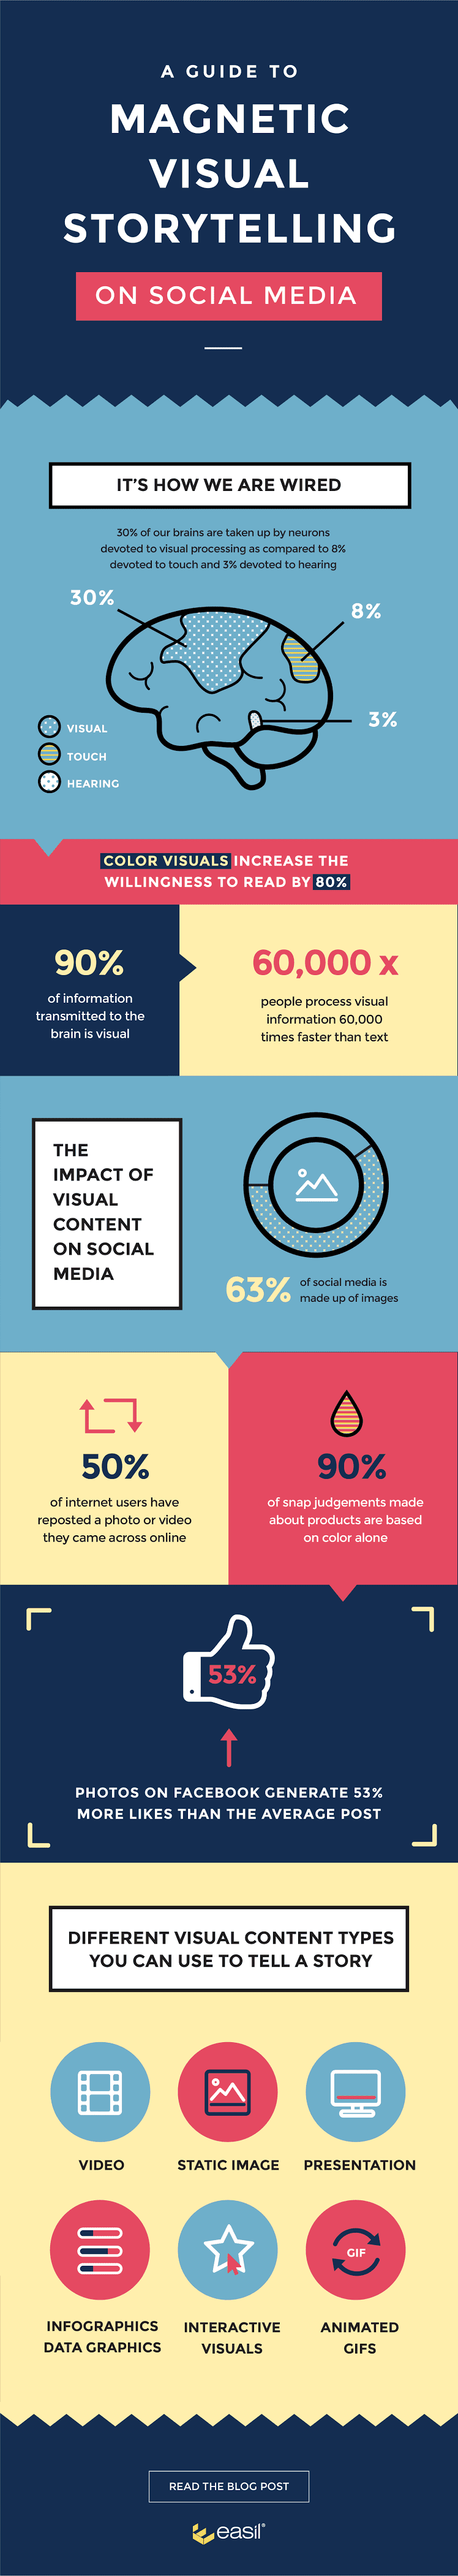 How to tell a magnetic visual story on social media - infographic